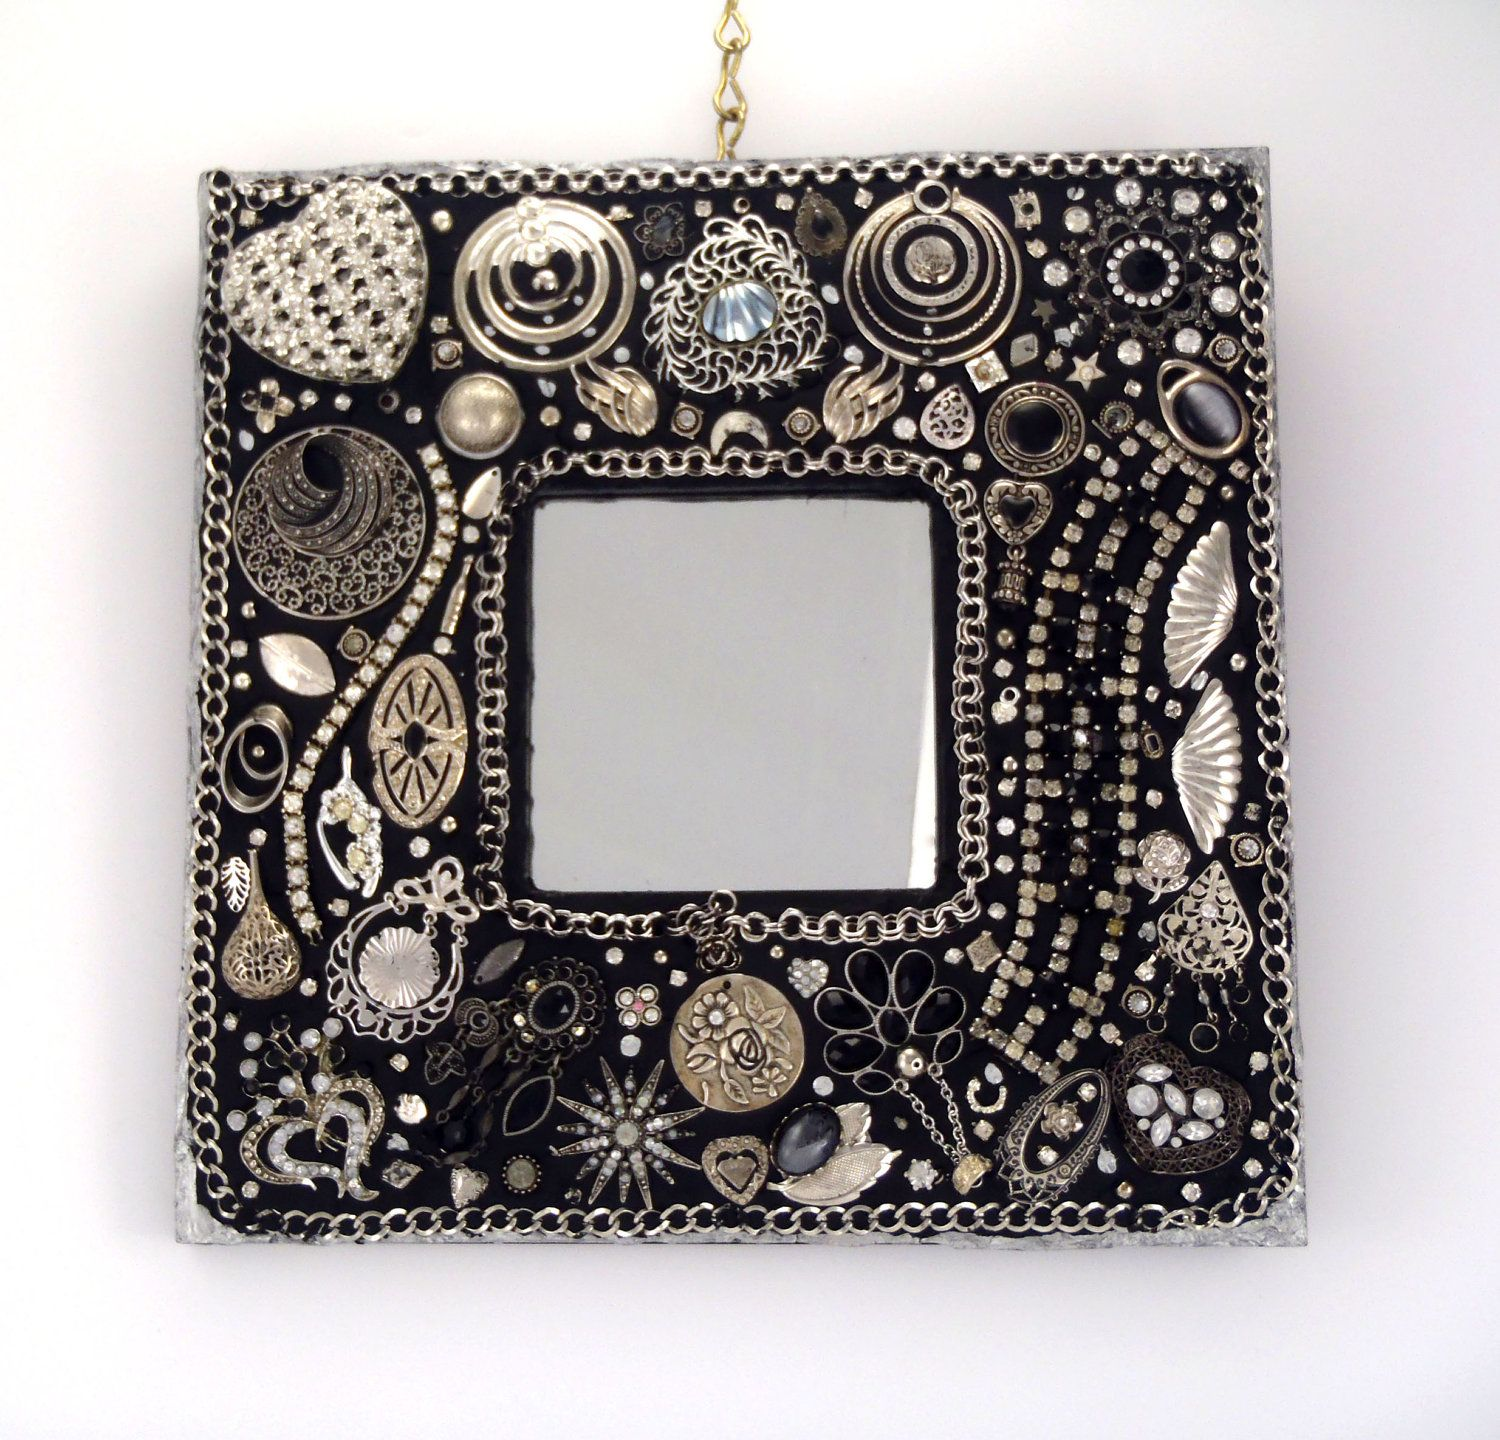 Mosaic Mirror Wall Decor black and silver decorative wall mirror, jeweled frame, repurposed